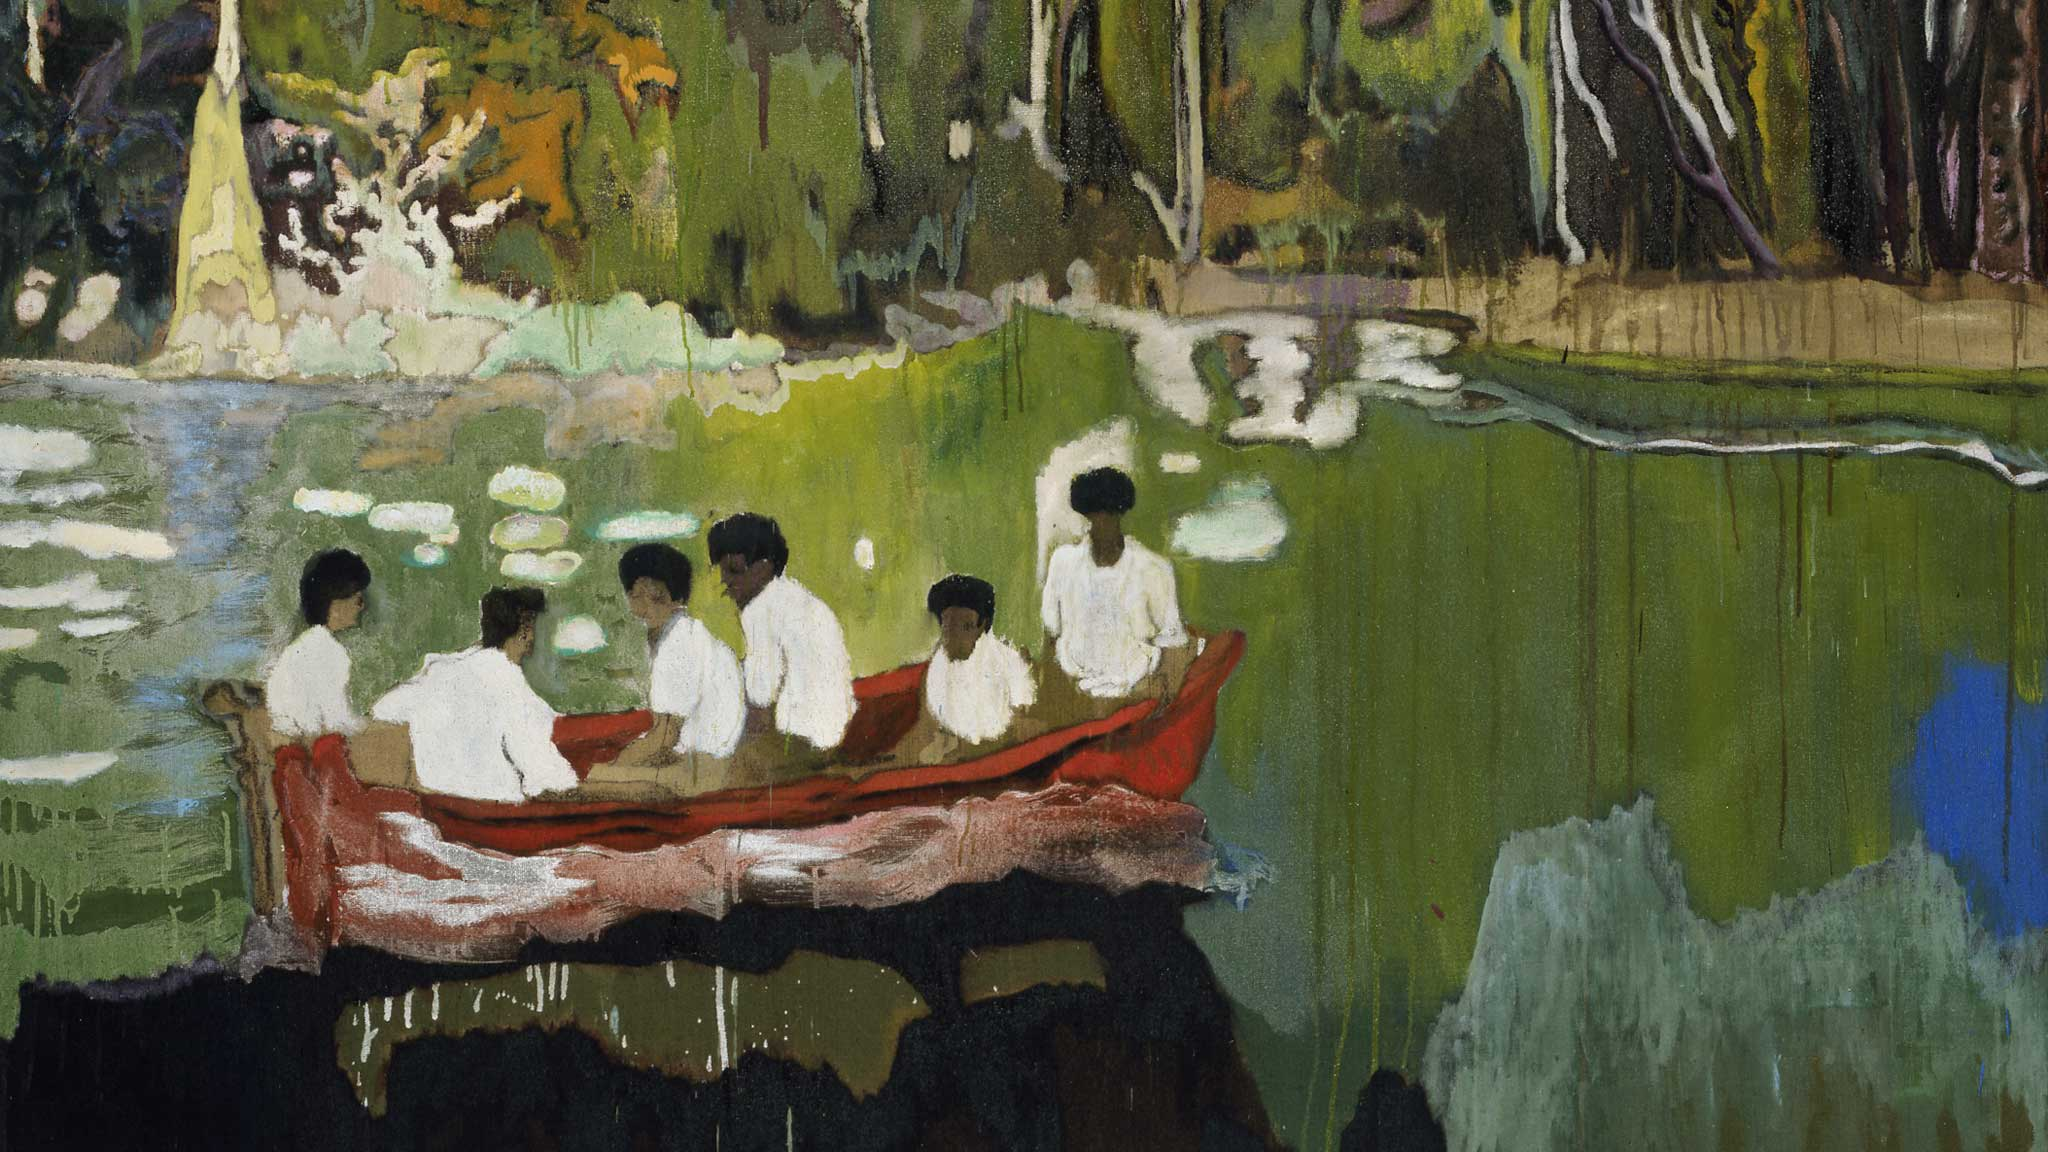 A trip into Peter Doig's elegantly reimagined world